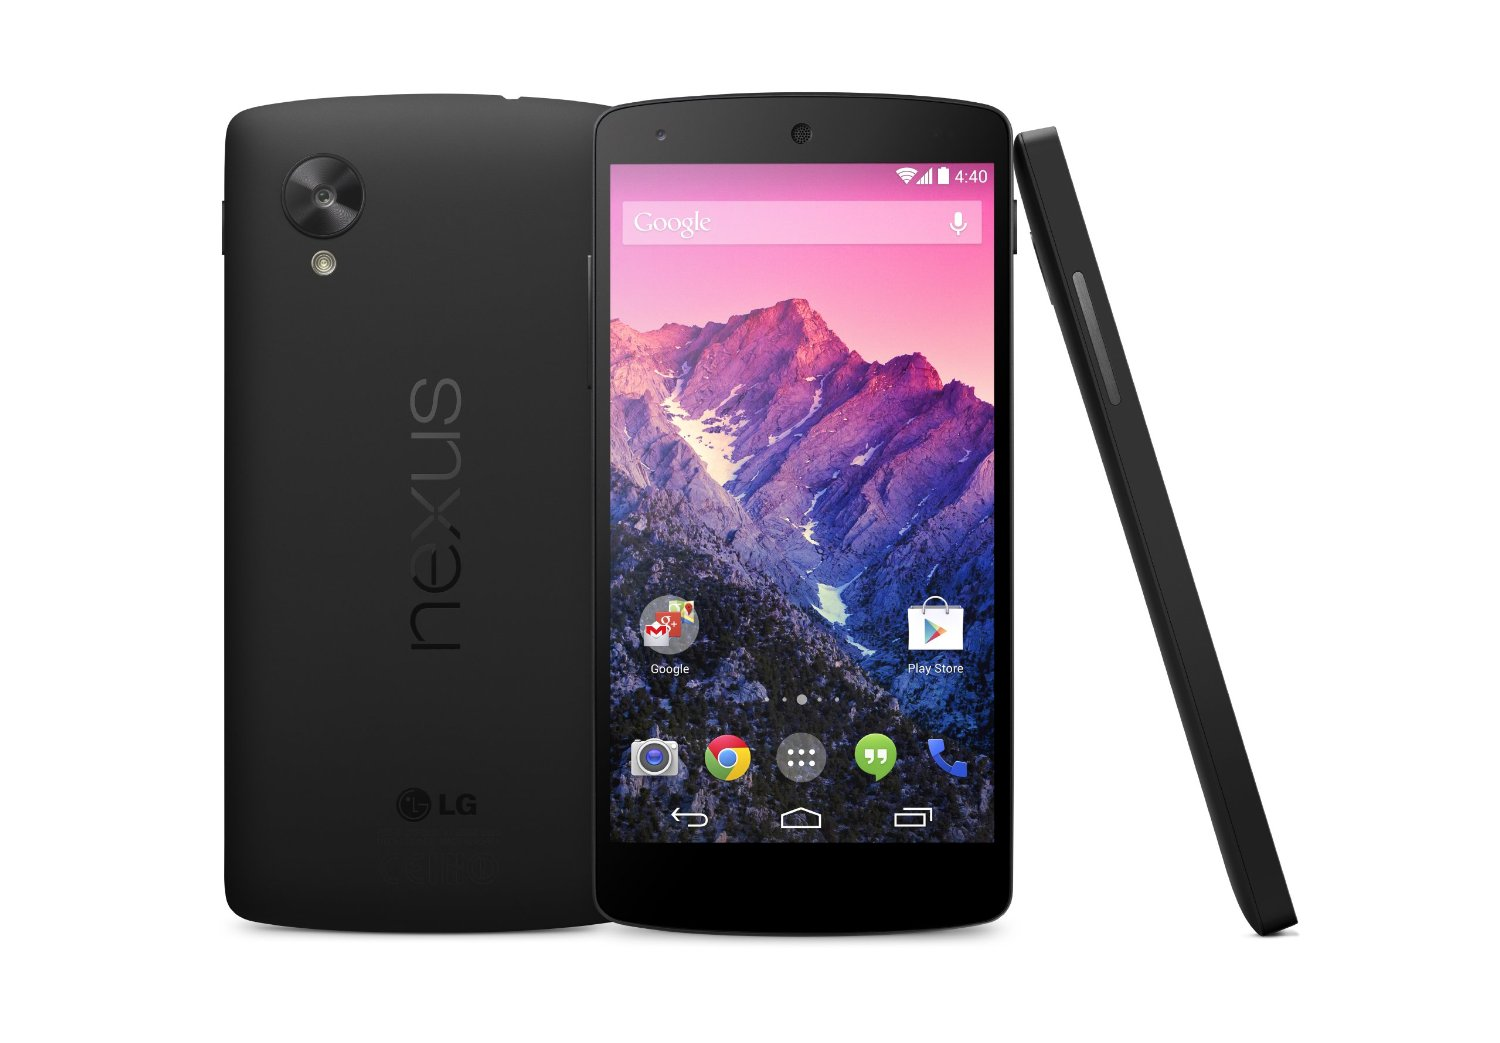 Google Nexus 5 by LG-Price and Availability